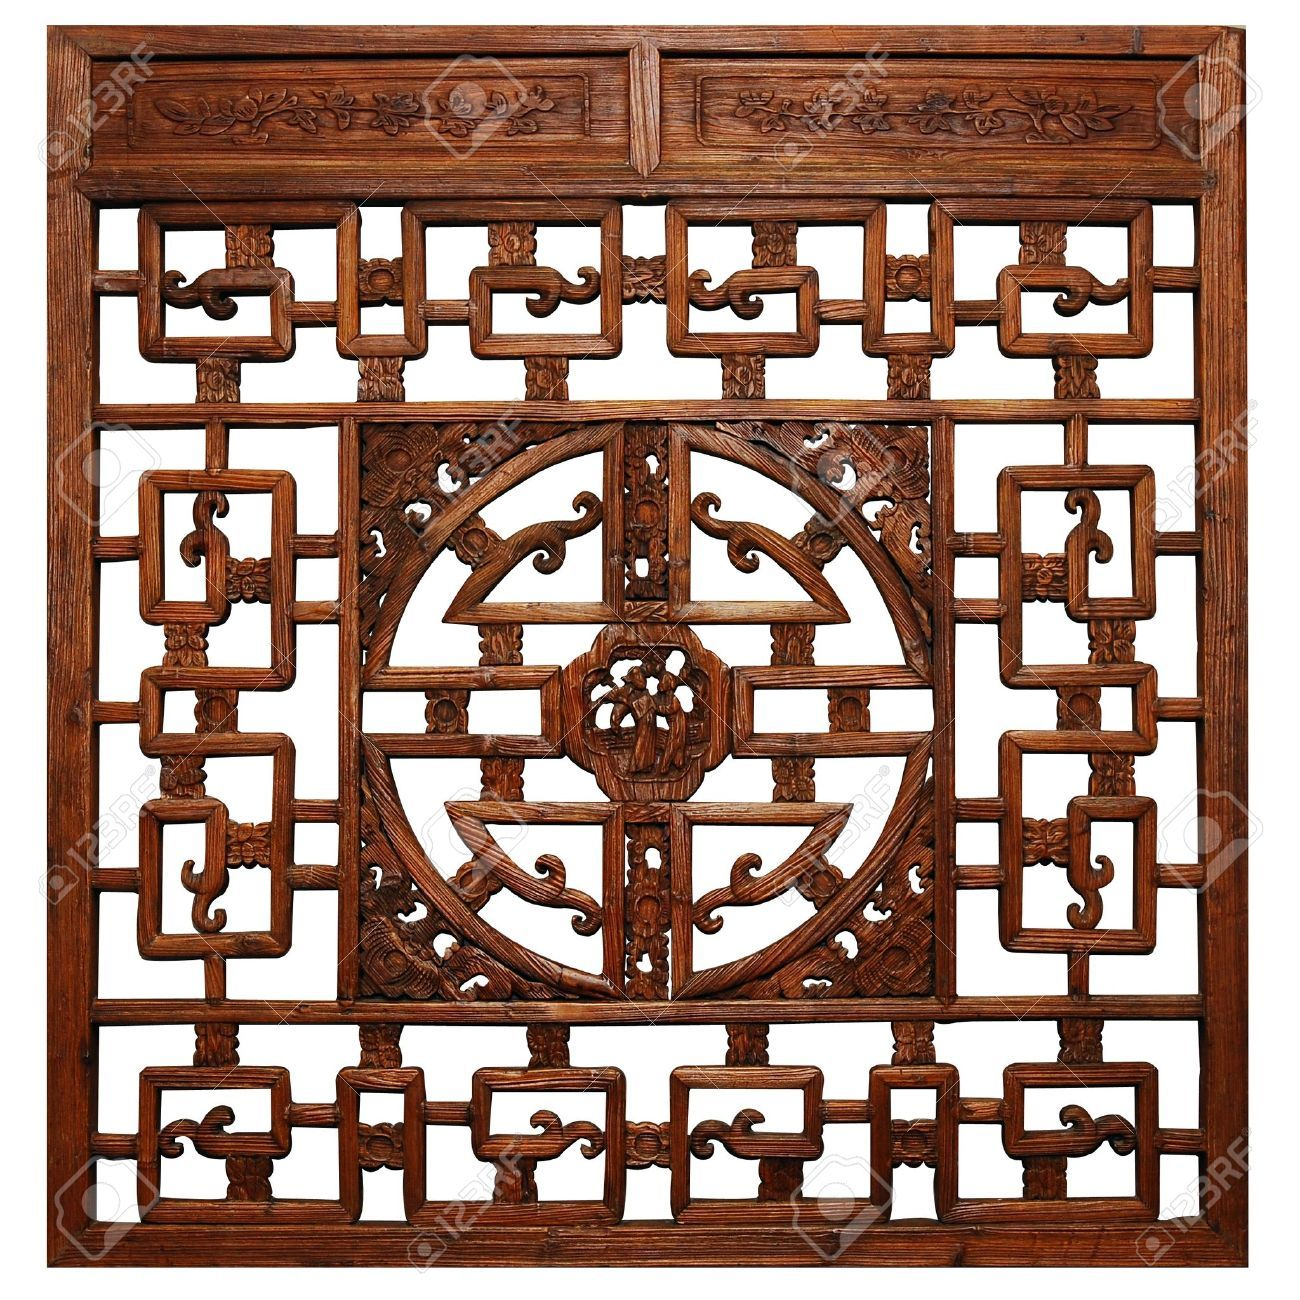 Chinese traditional wood carvings by Nonnakrit, via ShutterStock